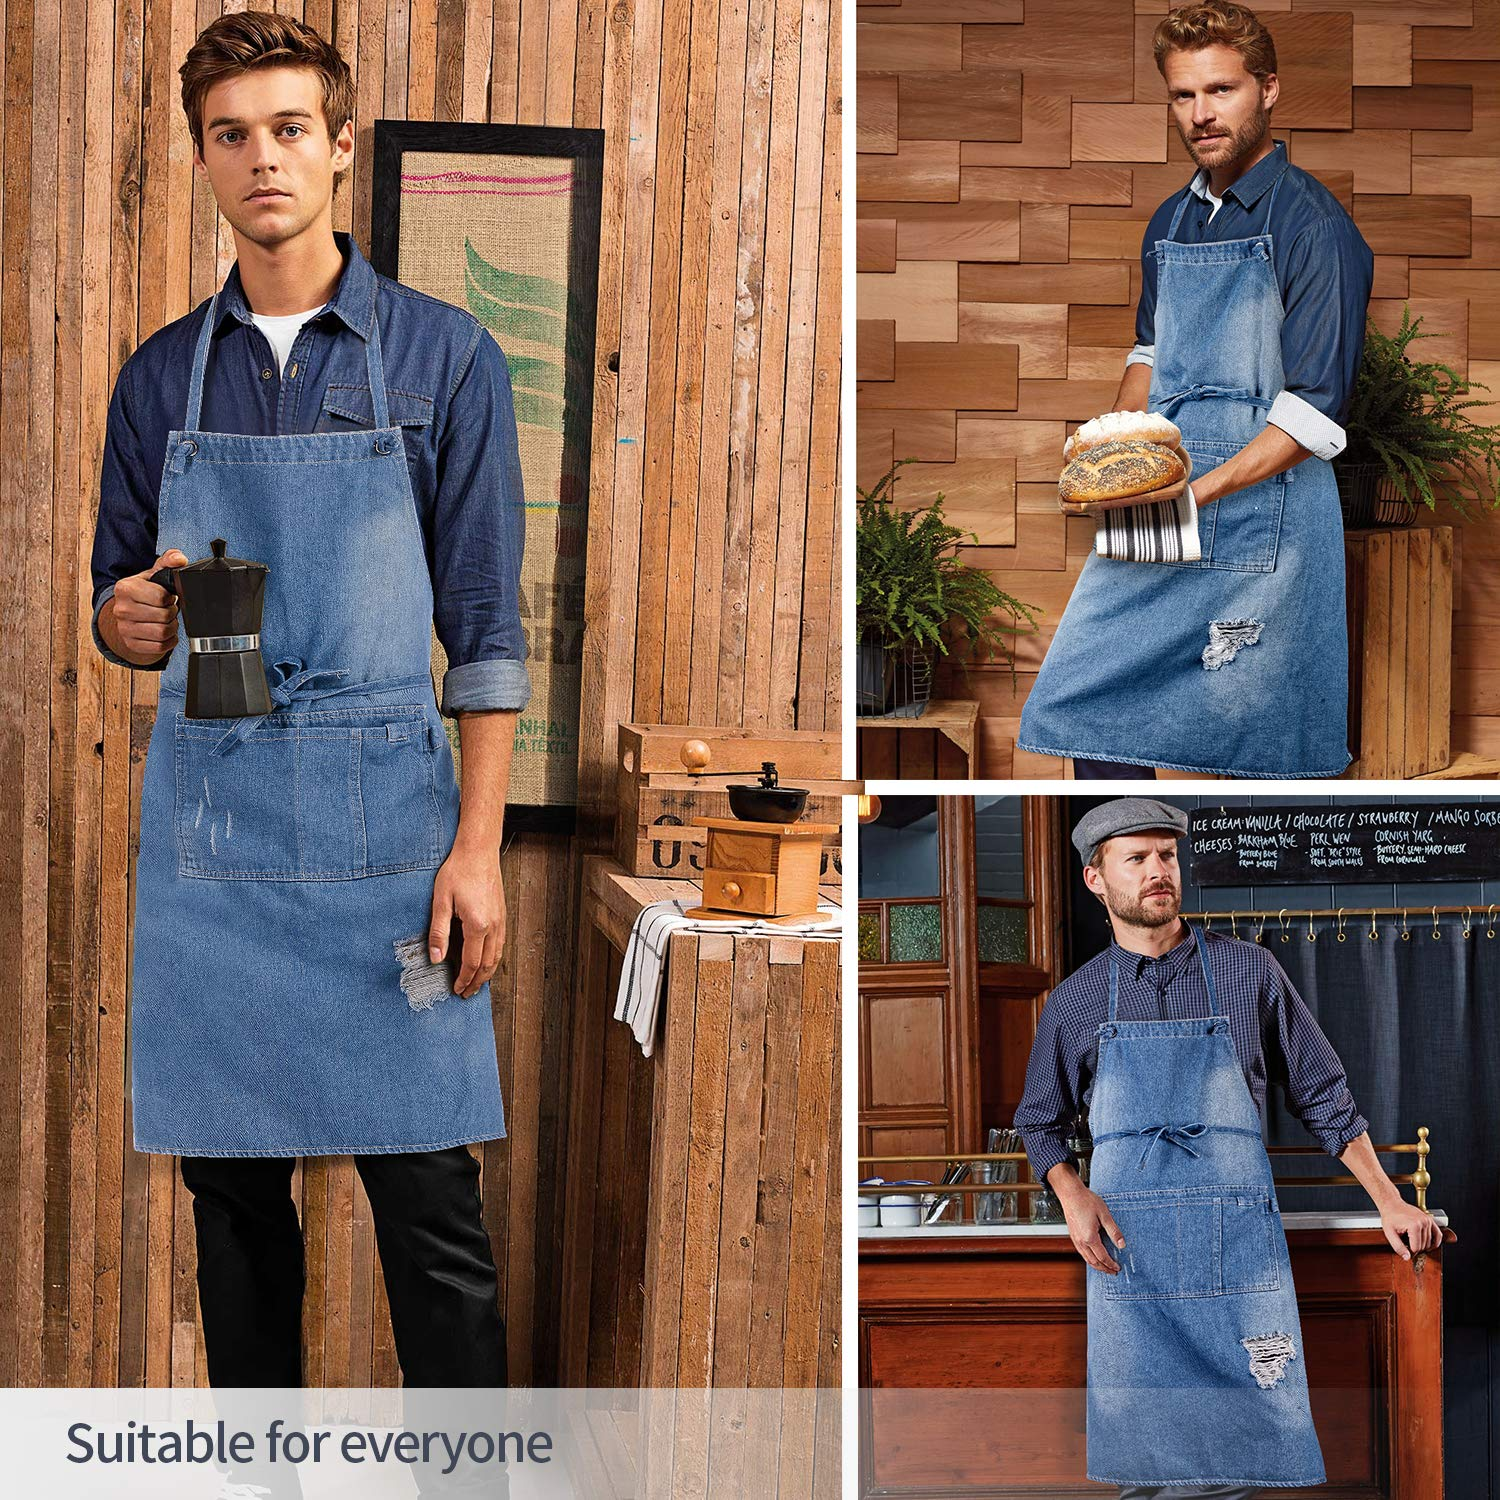 icaYre - Jeans Bib Aprons, 100% Cotton Apron with Pockets for Men and Women